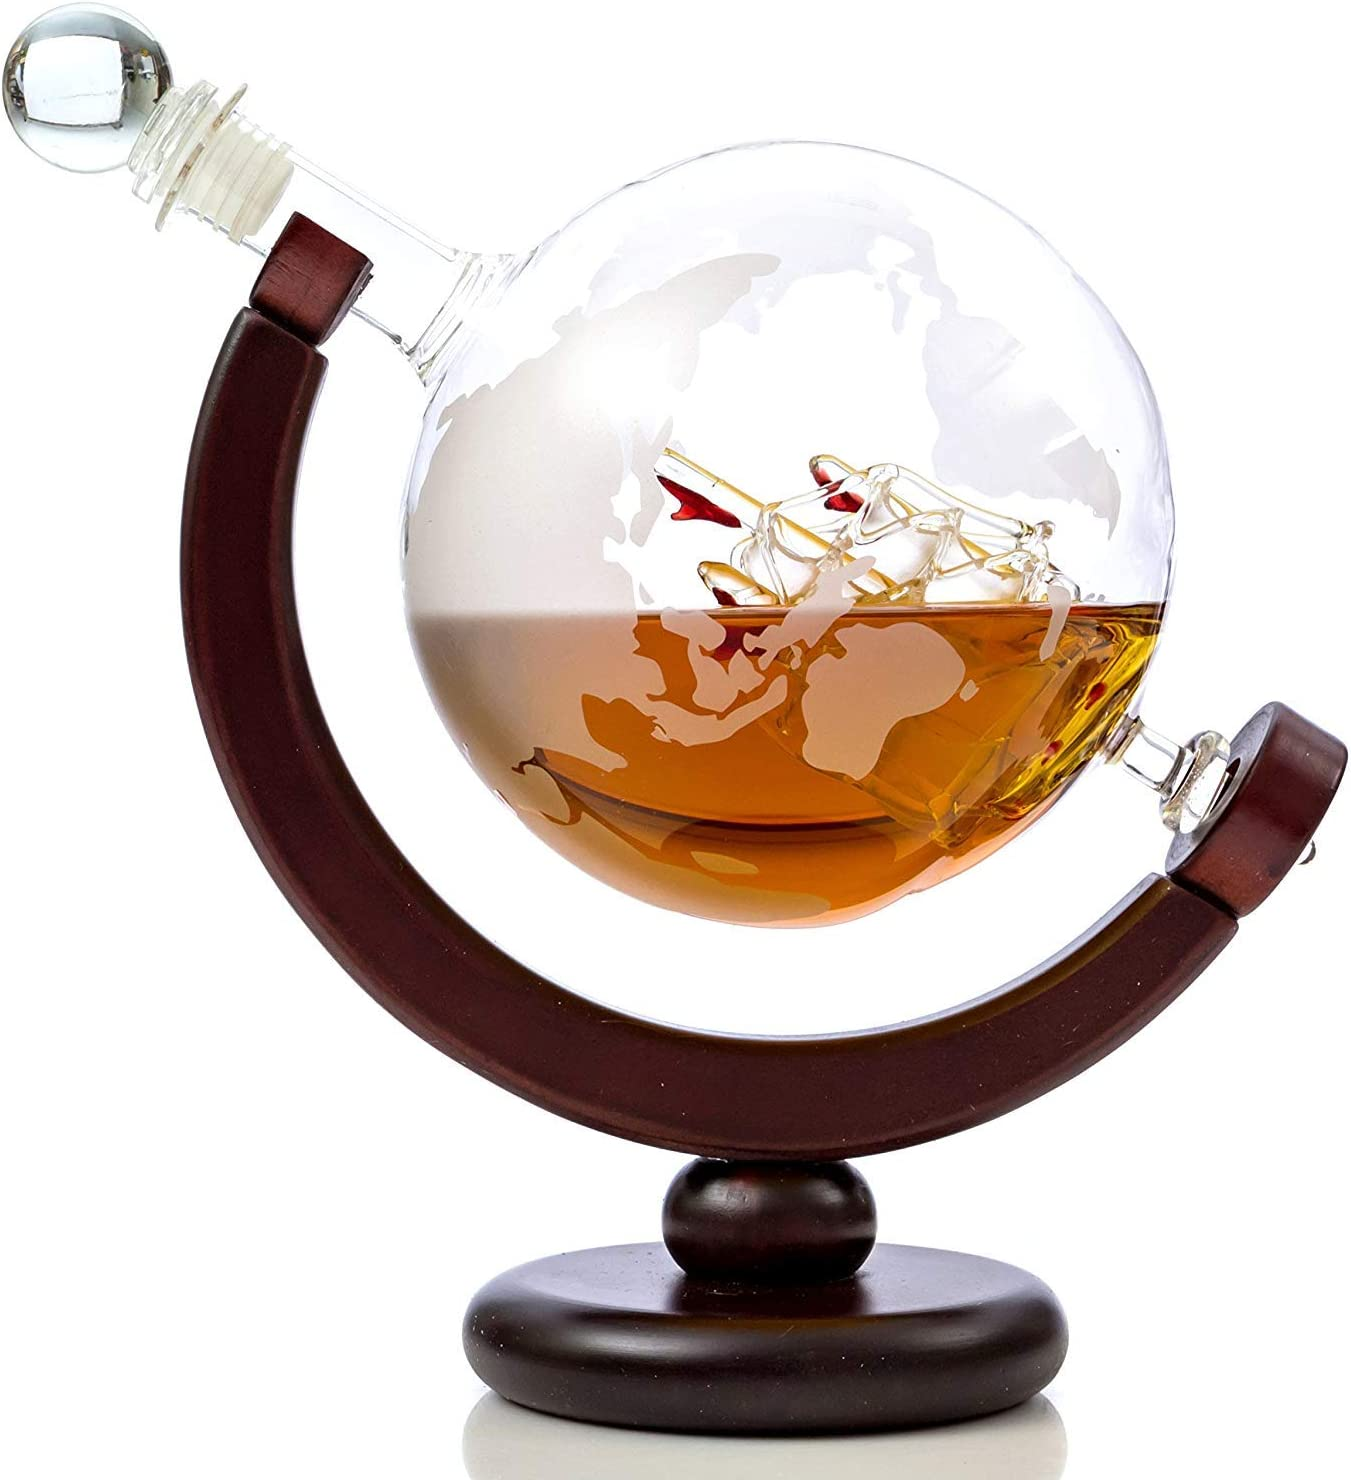 TUTC Whiskey Decanter Attention brand Globe Set with NEW Glass Whisky Etched 2